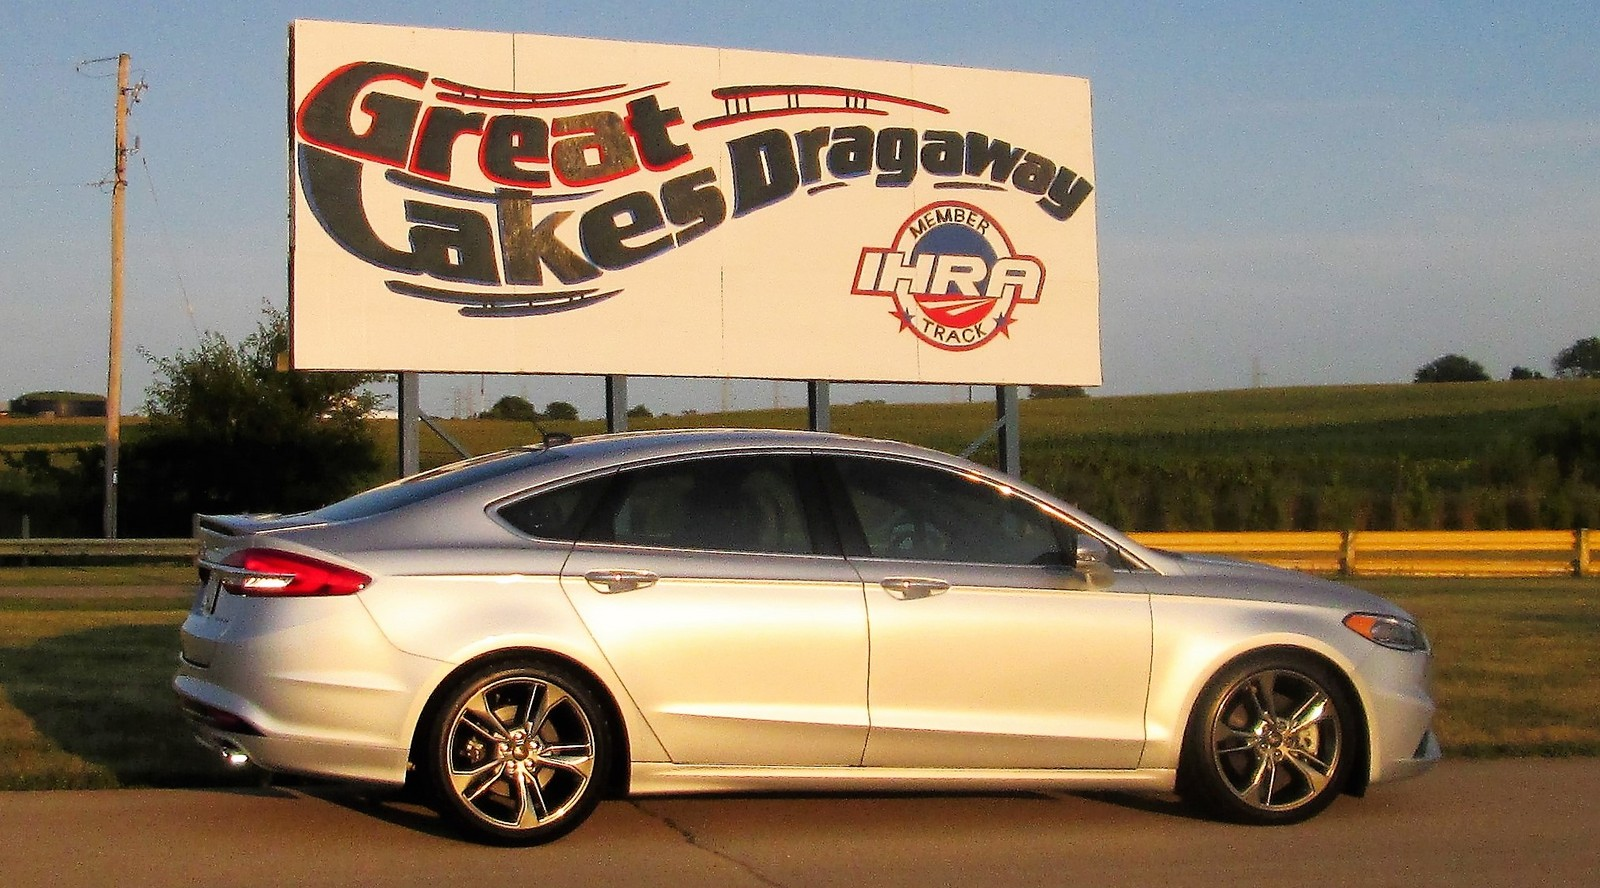 Ford Fusion Sport 0 60 >> 2017 Ford Fusion Sport 1 4 Mile Drag Racing Timeslip Specs 0